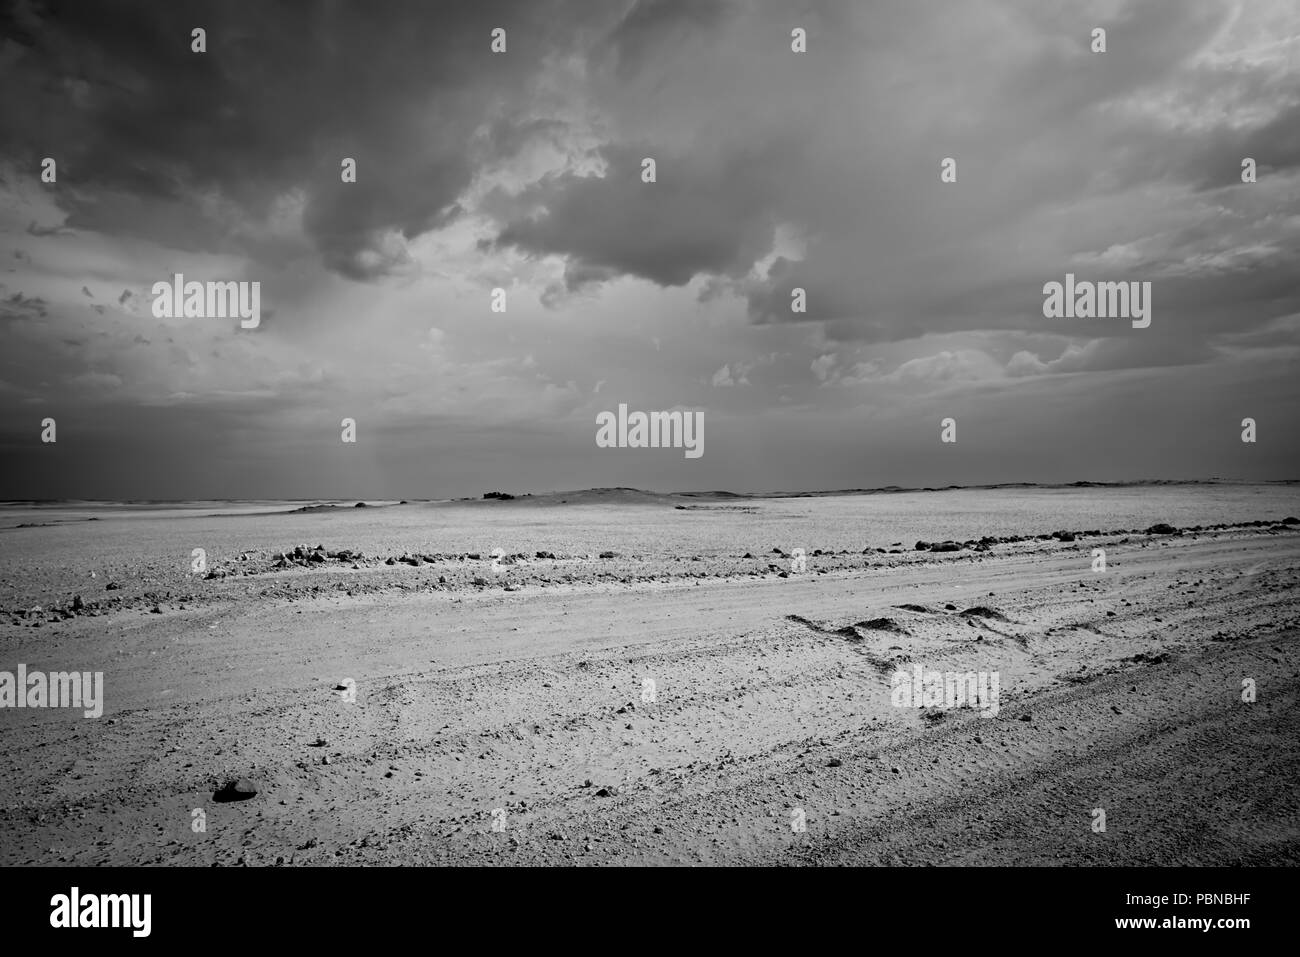 Dusty bumpy road through desert of Namibia as storm clouds collect overhead creating contrasting sky patterns - Stock Image